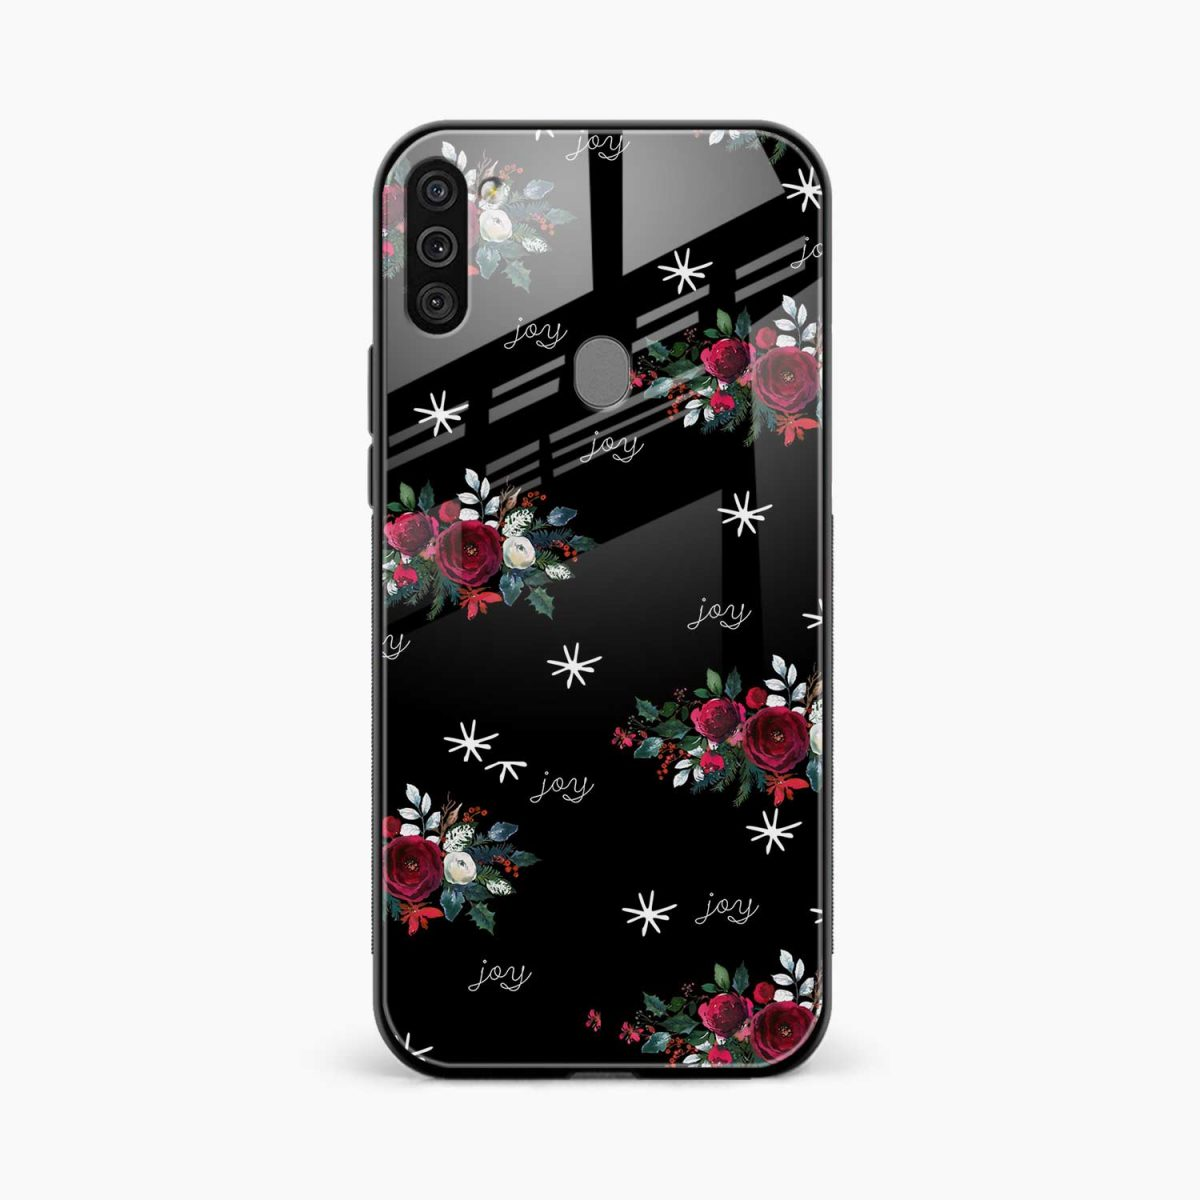 joy floral black colored front view samsung galaxy m11 back cover